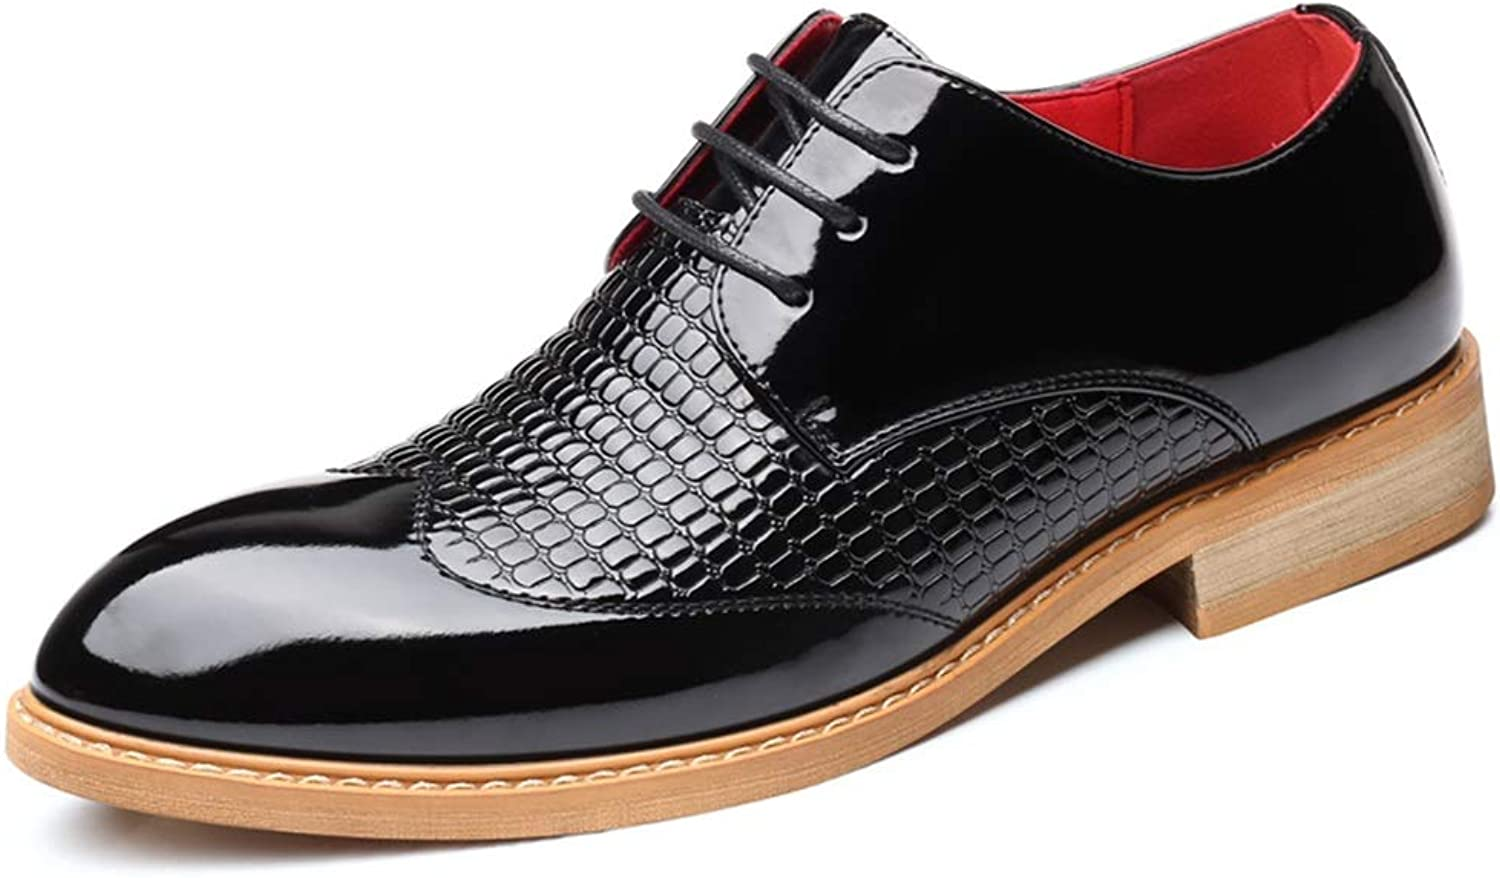 Business Oxford shoes for Men Formal PU Leather Lace-up Retro Embossing Vamp Cricket shoes